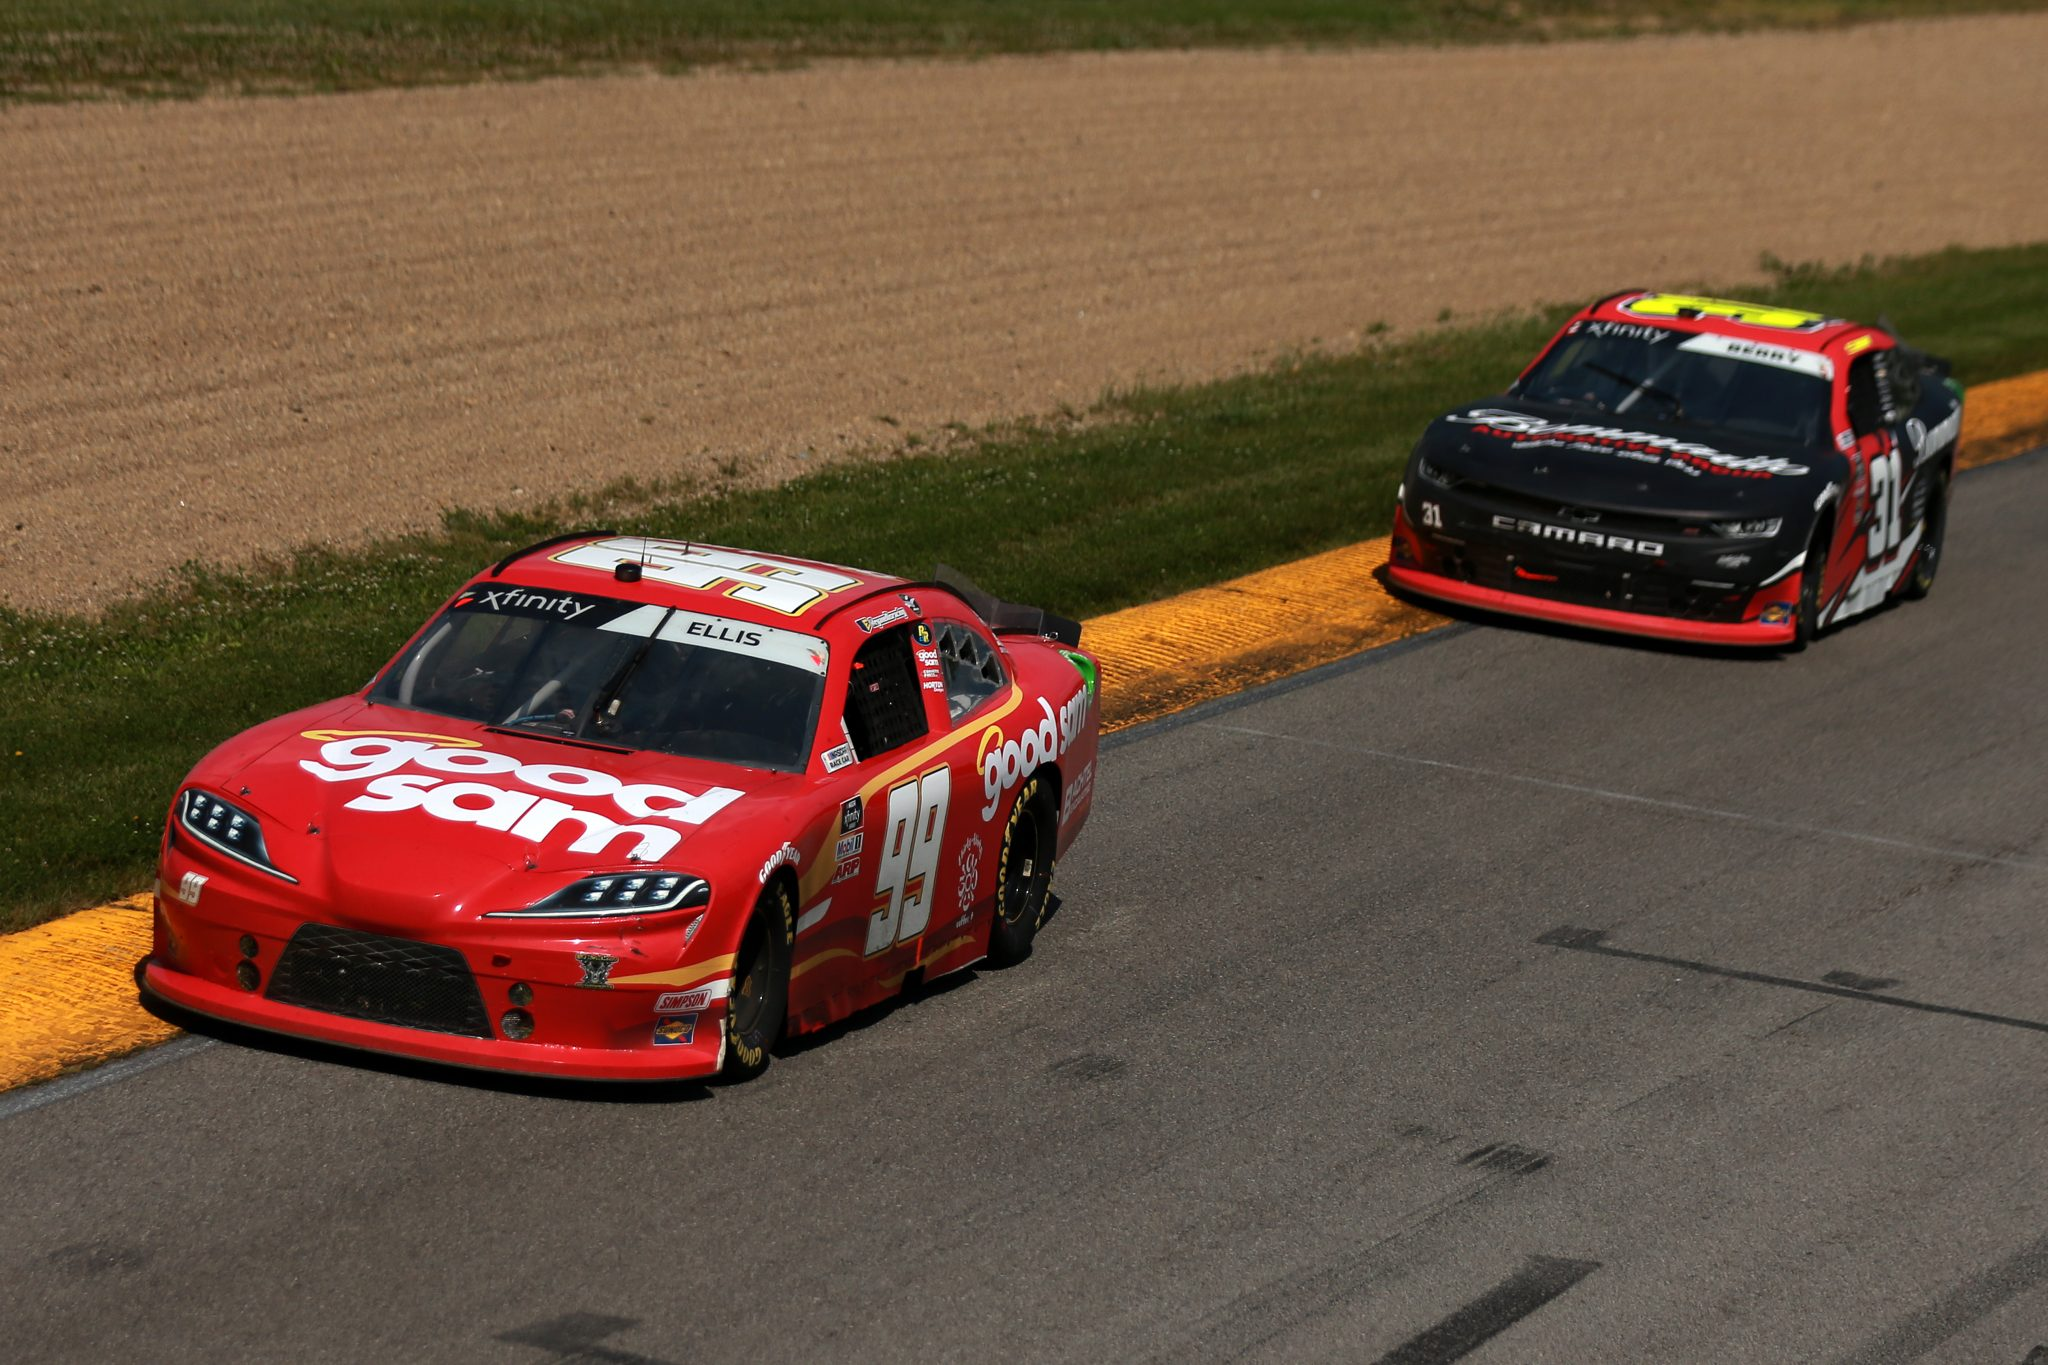 LEXINGTON, OHIO - JUNE 05: Ryan Ellis, driver of the #99 Good Sam/CorvetteParts.net Ford, and Josh Berry, driver of the #31 Bommarito Automotive Group Chevrolet, race during the NASCAR Xfinity Series B&L Transport 170 at Mid-Ohio Sports Car Course on June 05, 2021 in Lexington, Ohio. (Photo by Sean Gardner/Getty Images)   Getty Images